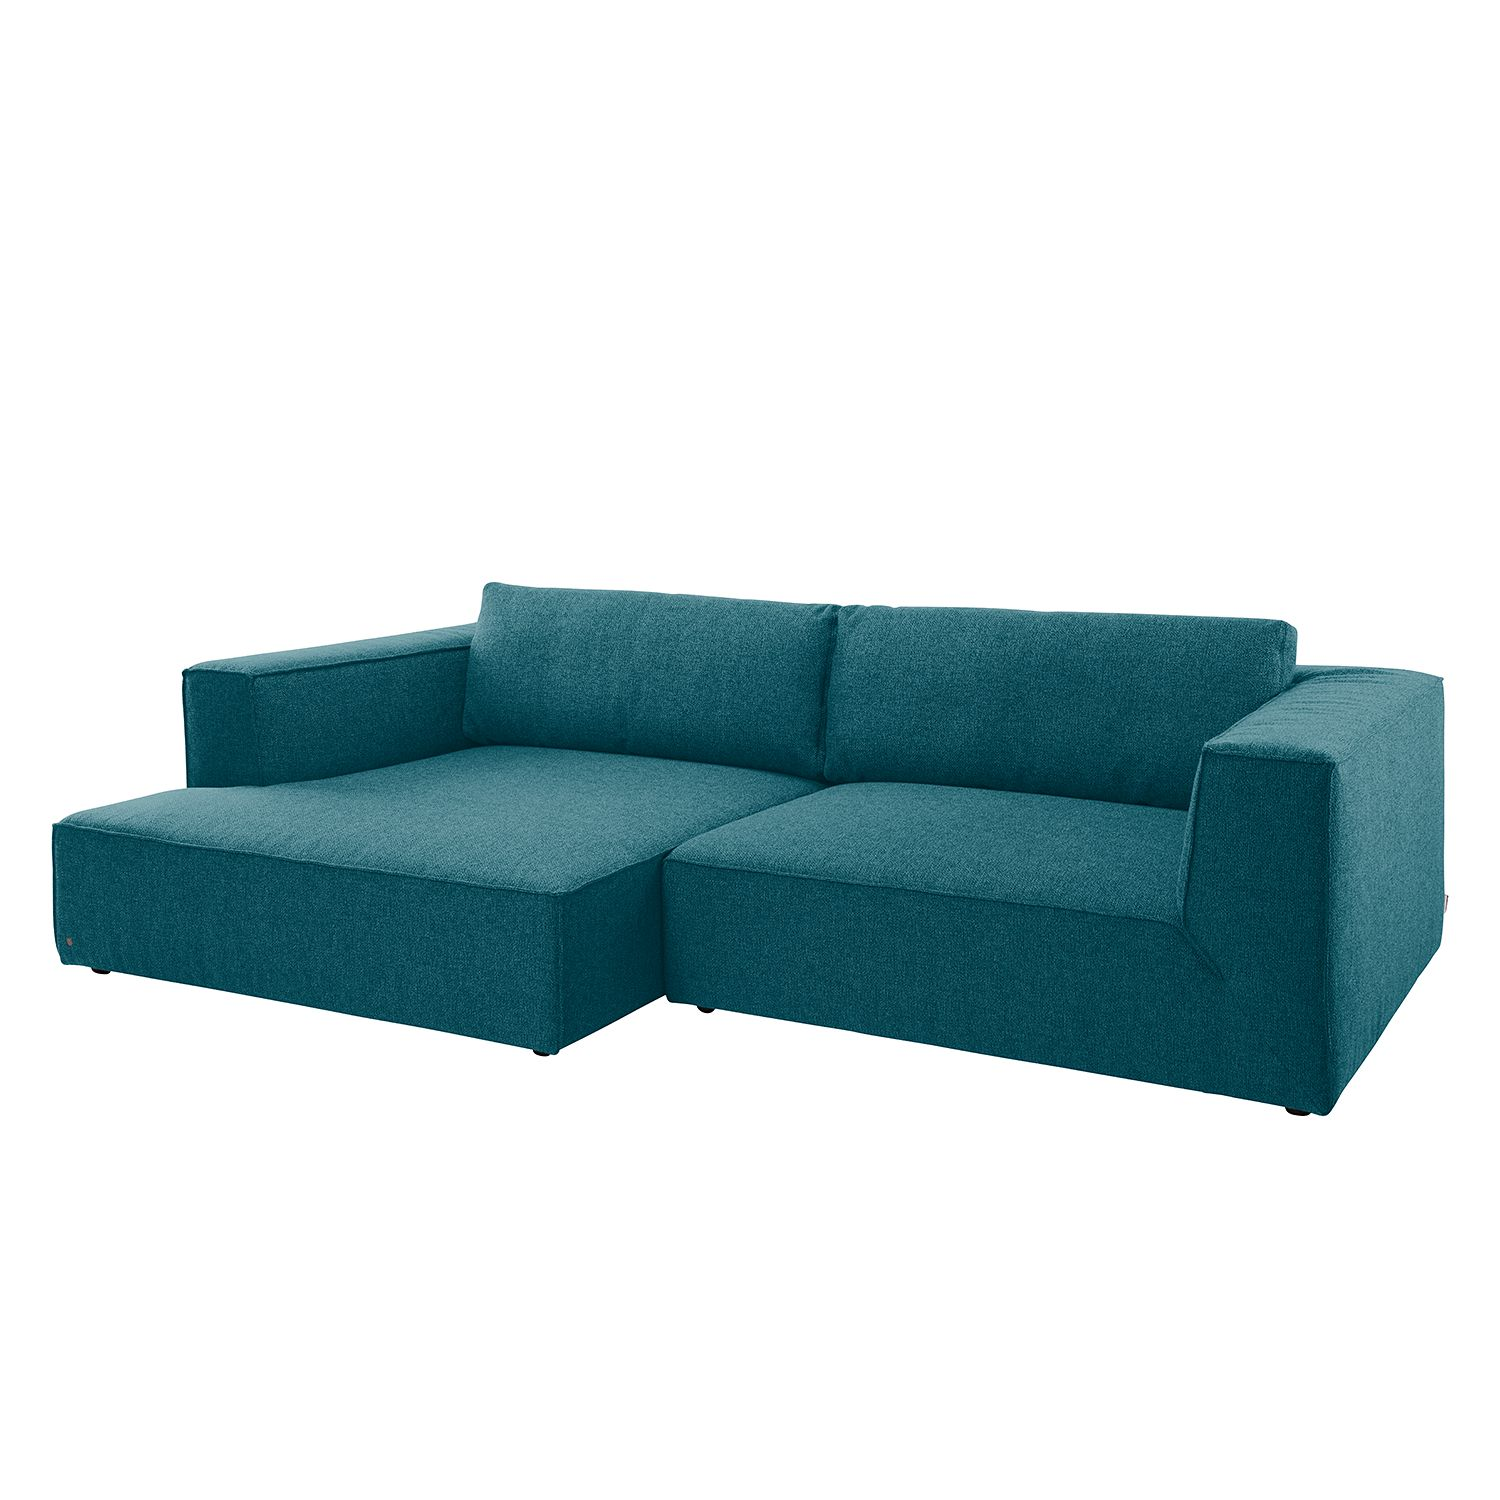 Ecksofa Big Cube Style Webstoff - Longchair davorstehend links - Stoff TBO3 petrol green, Tom Tailor